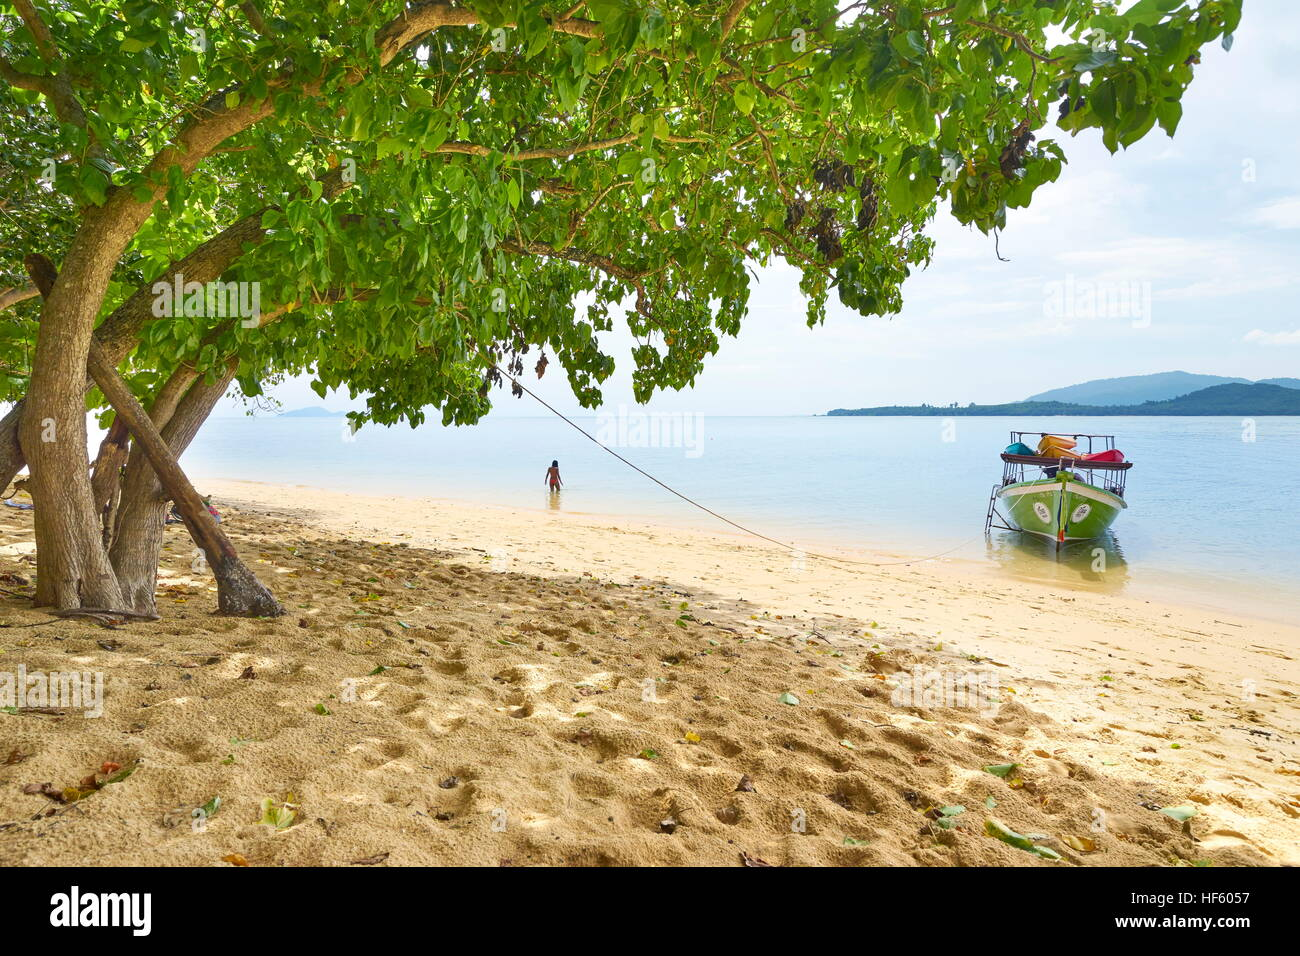 Plage de sable à Bu Bu), province de Krabi, Thaïlande Photo Stock